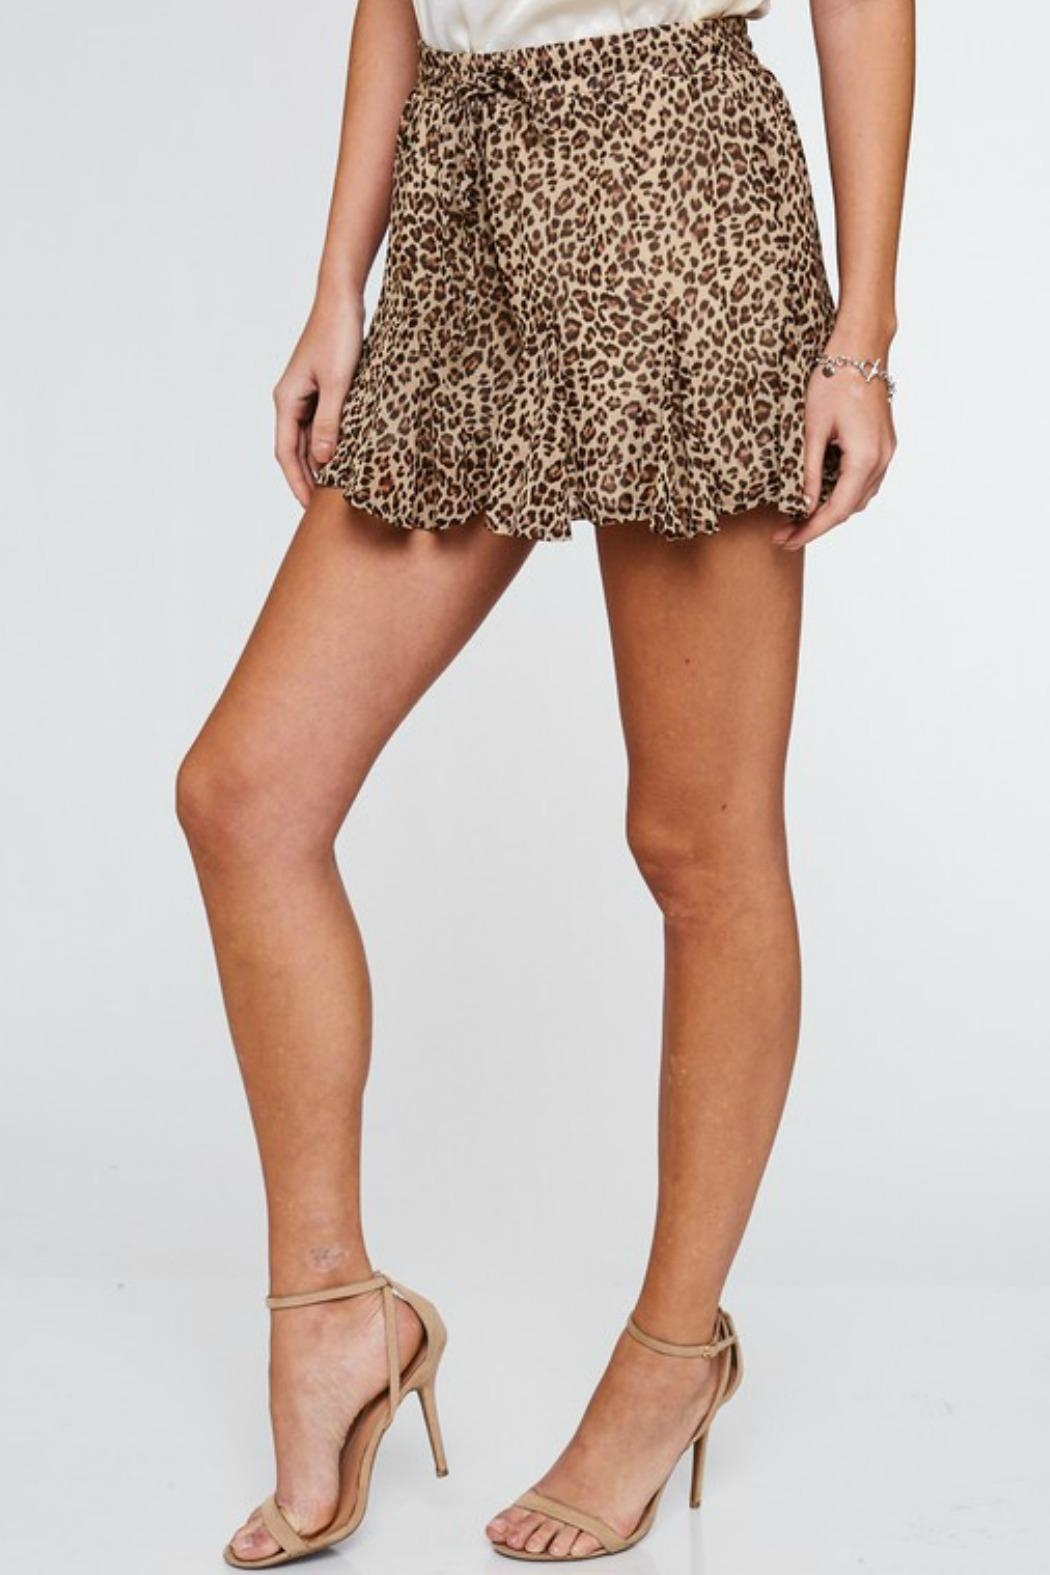 LLove USA Cameron Leopard Shorts - Side Cropped Image